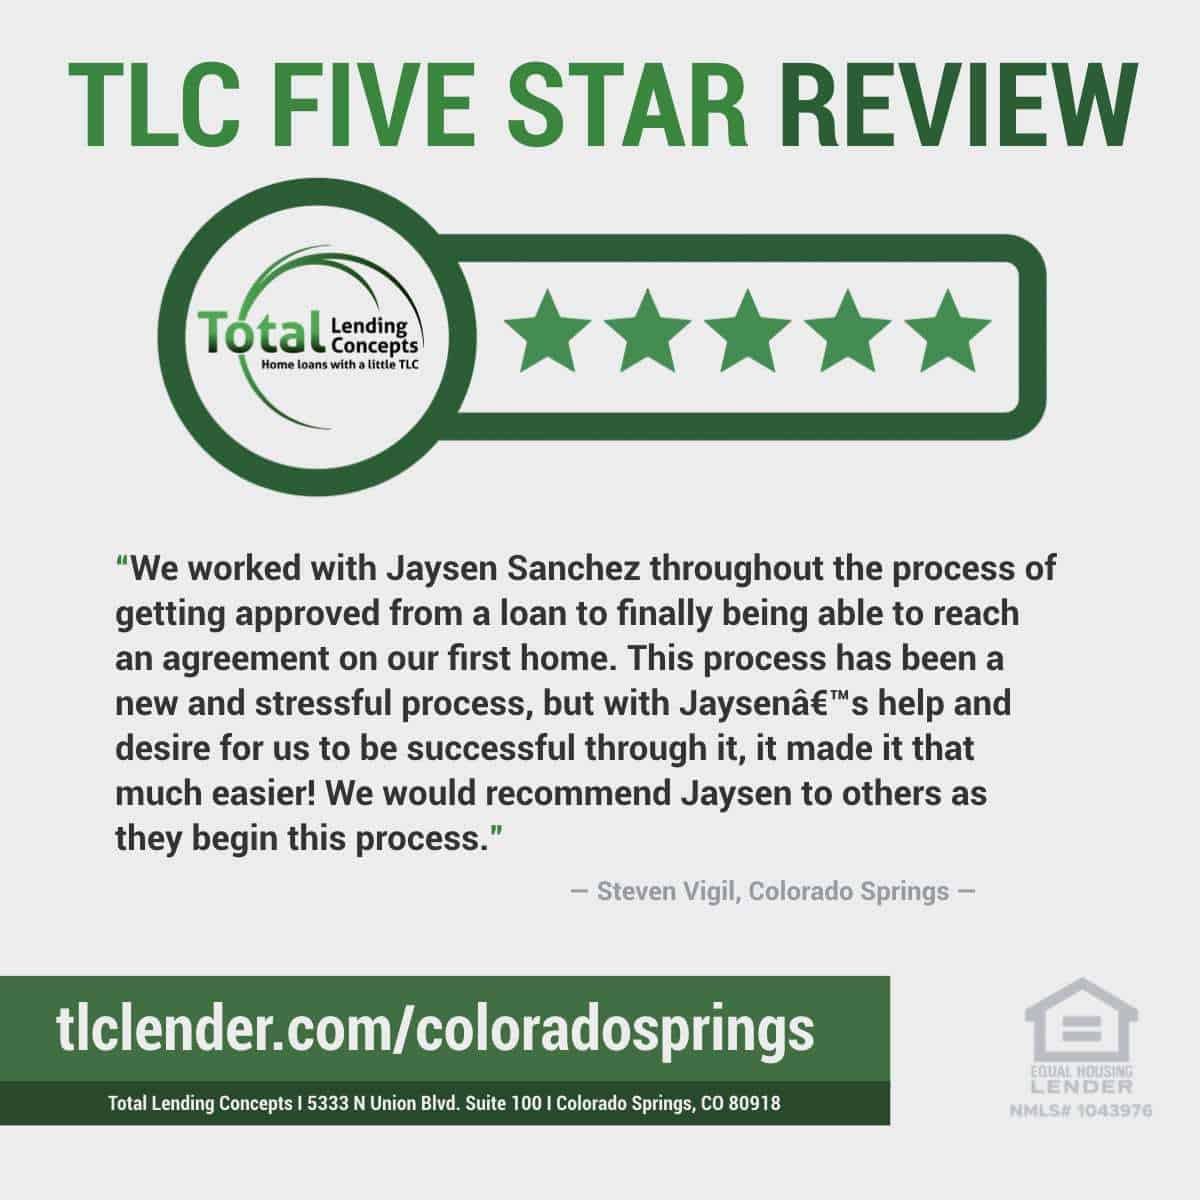 Total-Lending-Concepts-Five-Star-Review-Steven-Vigil-in-Colorado-Springs-Colorado-for-Jaysen-Sanchez-Home-Loan